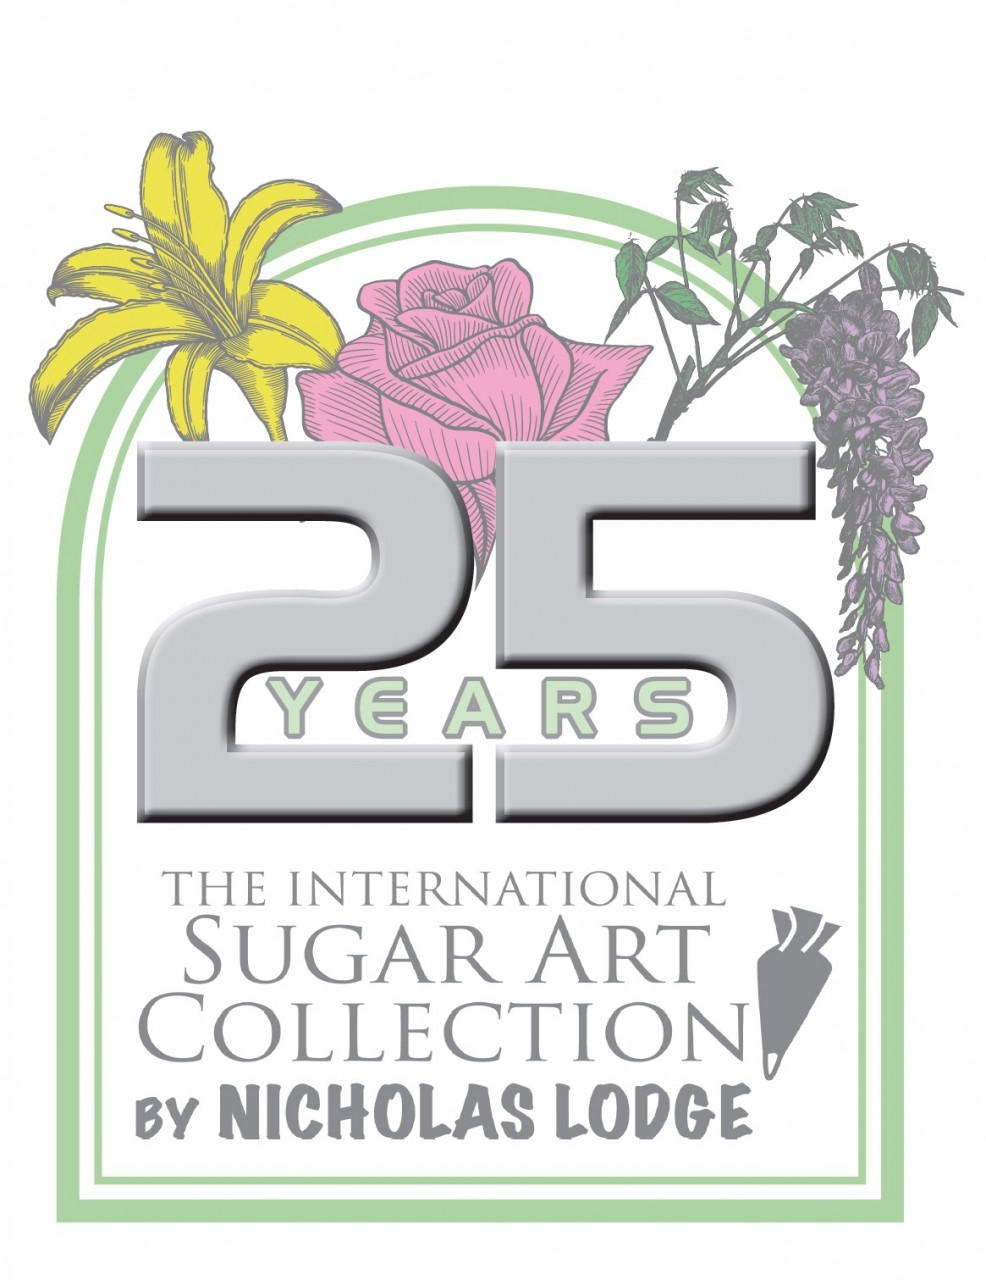 Shop til you Drop at the 25th Anniversary Celebration!